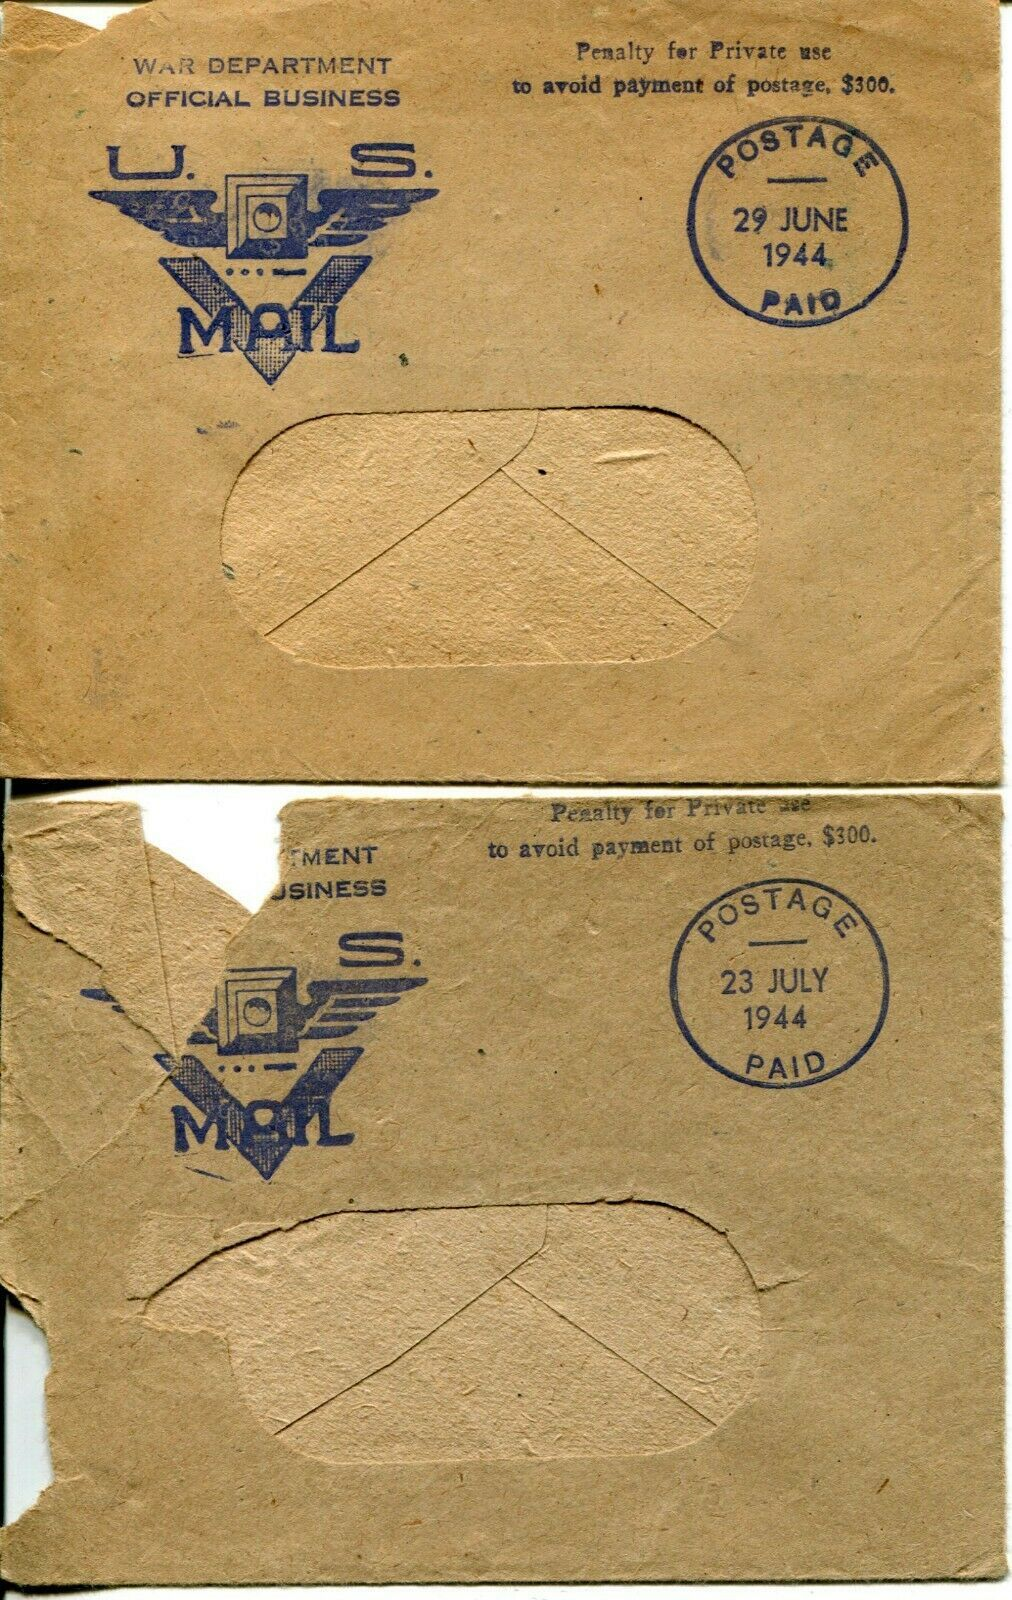 WWII USA Cover V-mail Postage Ration Book Stamps Army Military Collection image 9